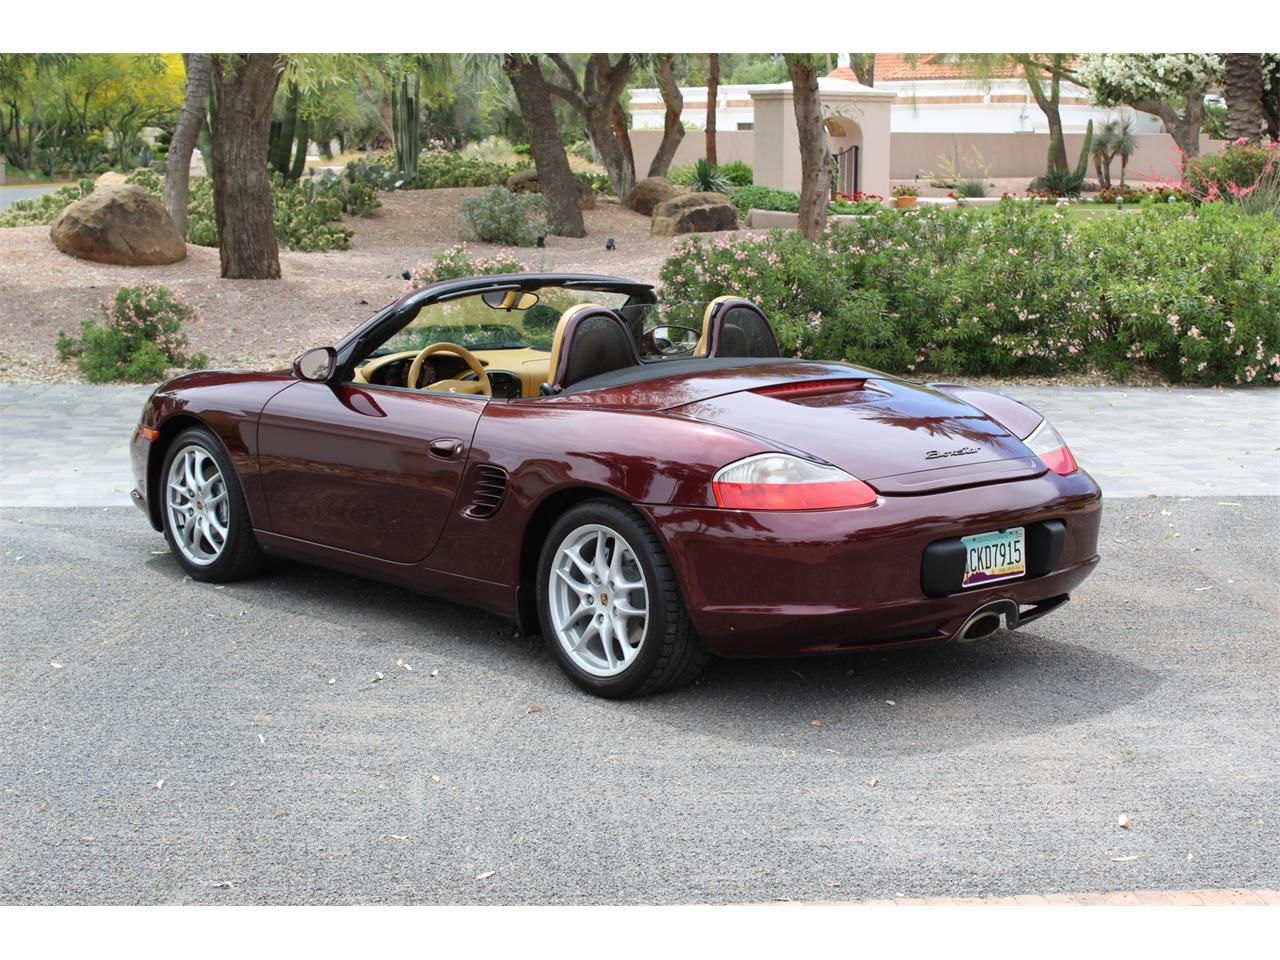 Large Picture of 2004 Porsche Boxster Auction Vehicle Offered by Bring A Trailer - Q56F